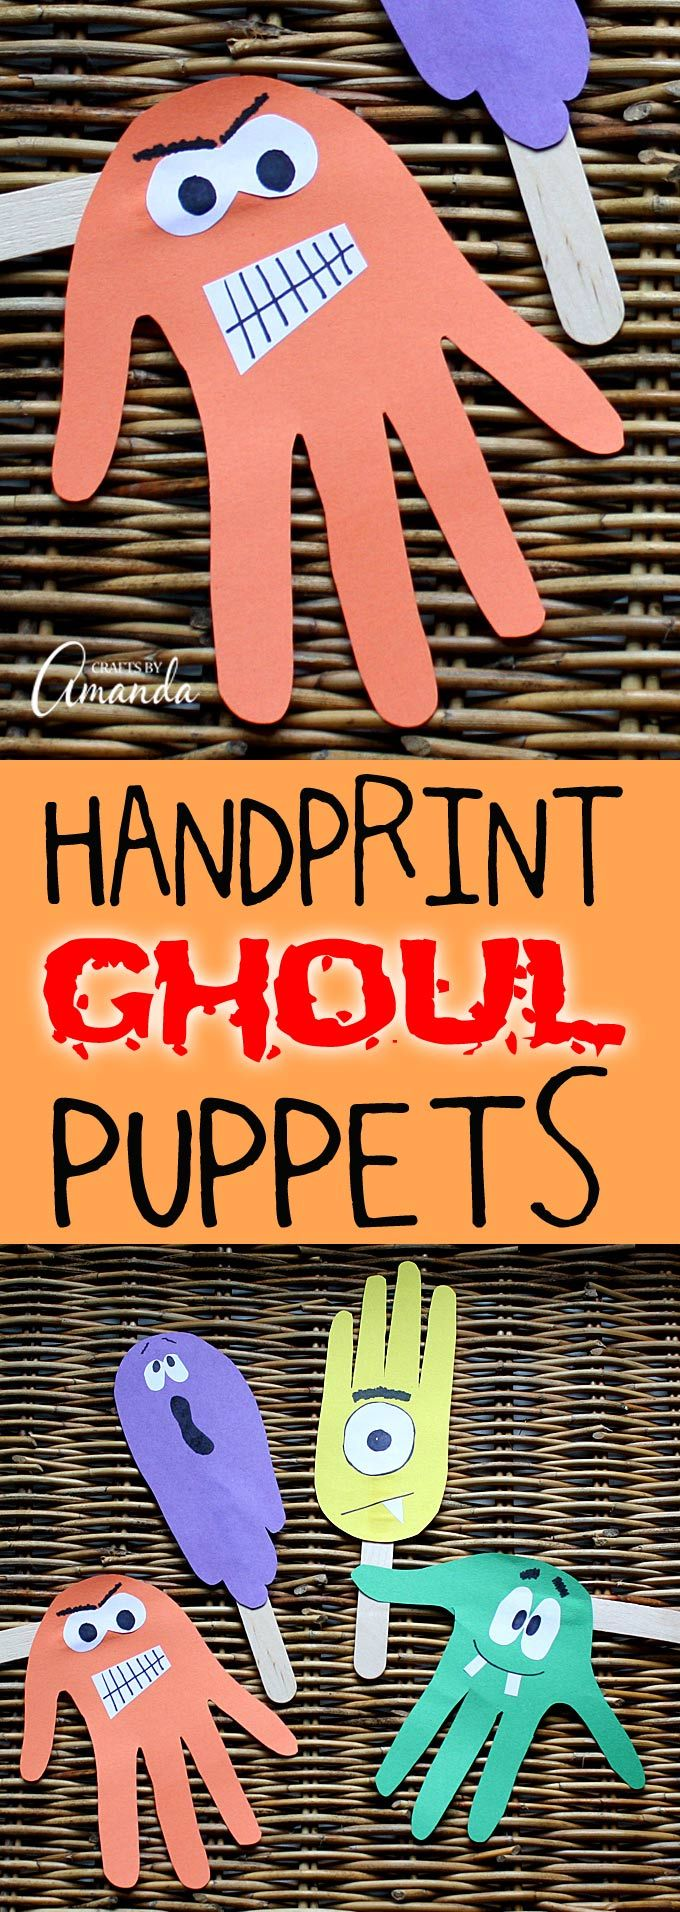 Lisa b mrs s halloween decorating with kids in three easy steps - 17 Best Images About Halloween On Pinterest Halloween Party Halloween Decorations And Easy Halloween